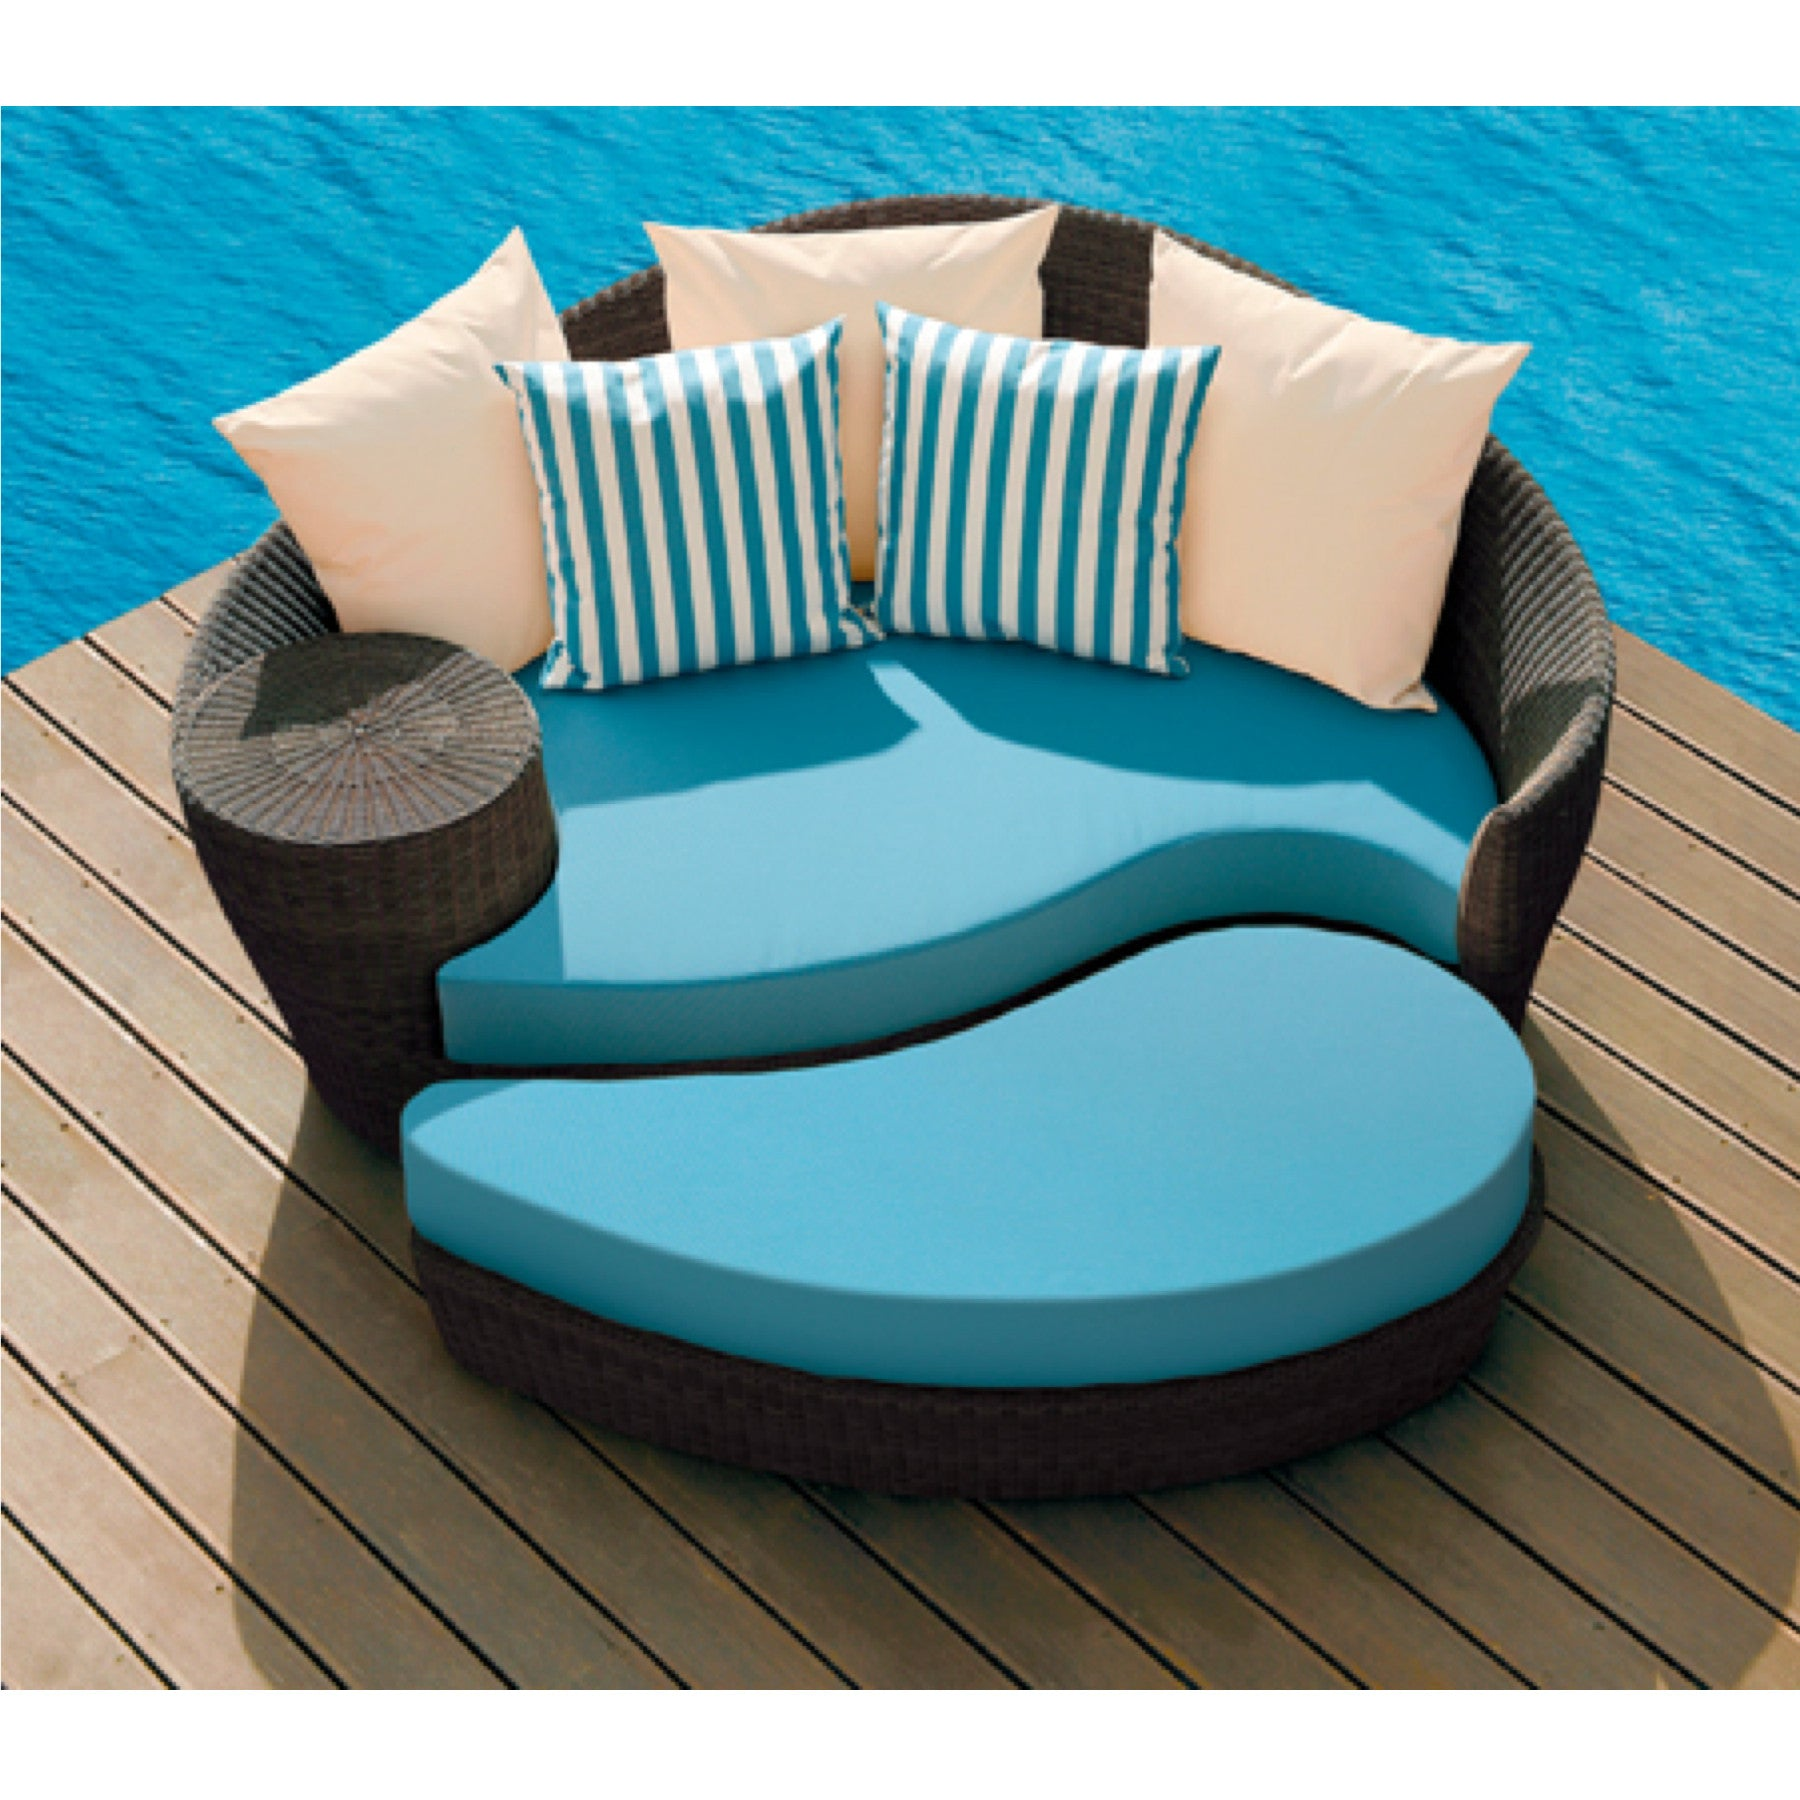 dune outdoor furniture. TRO08001 OHMM® Dune Outdoor Daybed Furniture O